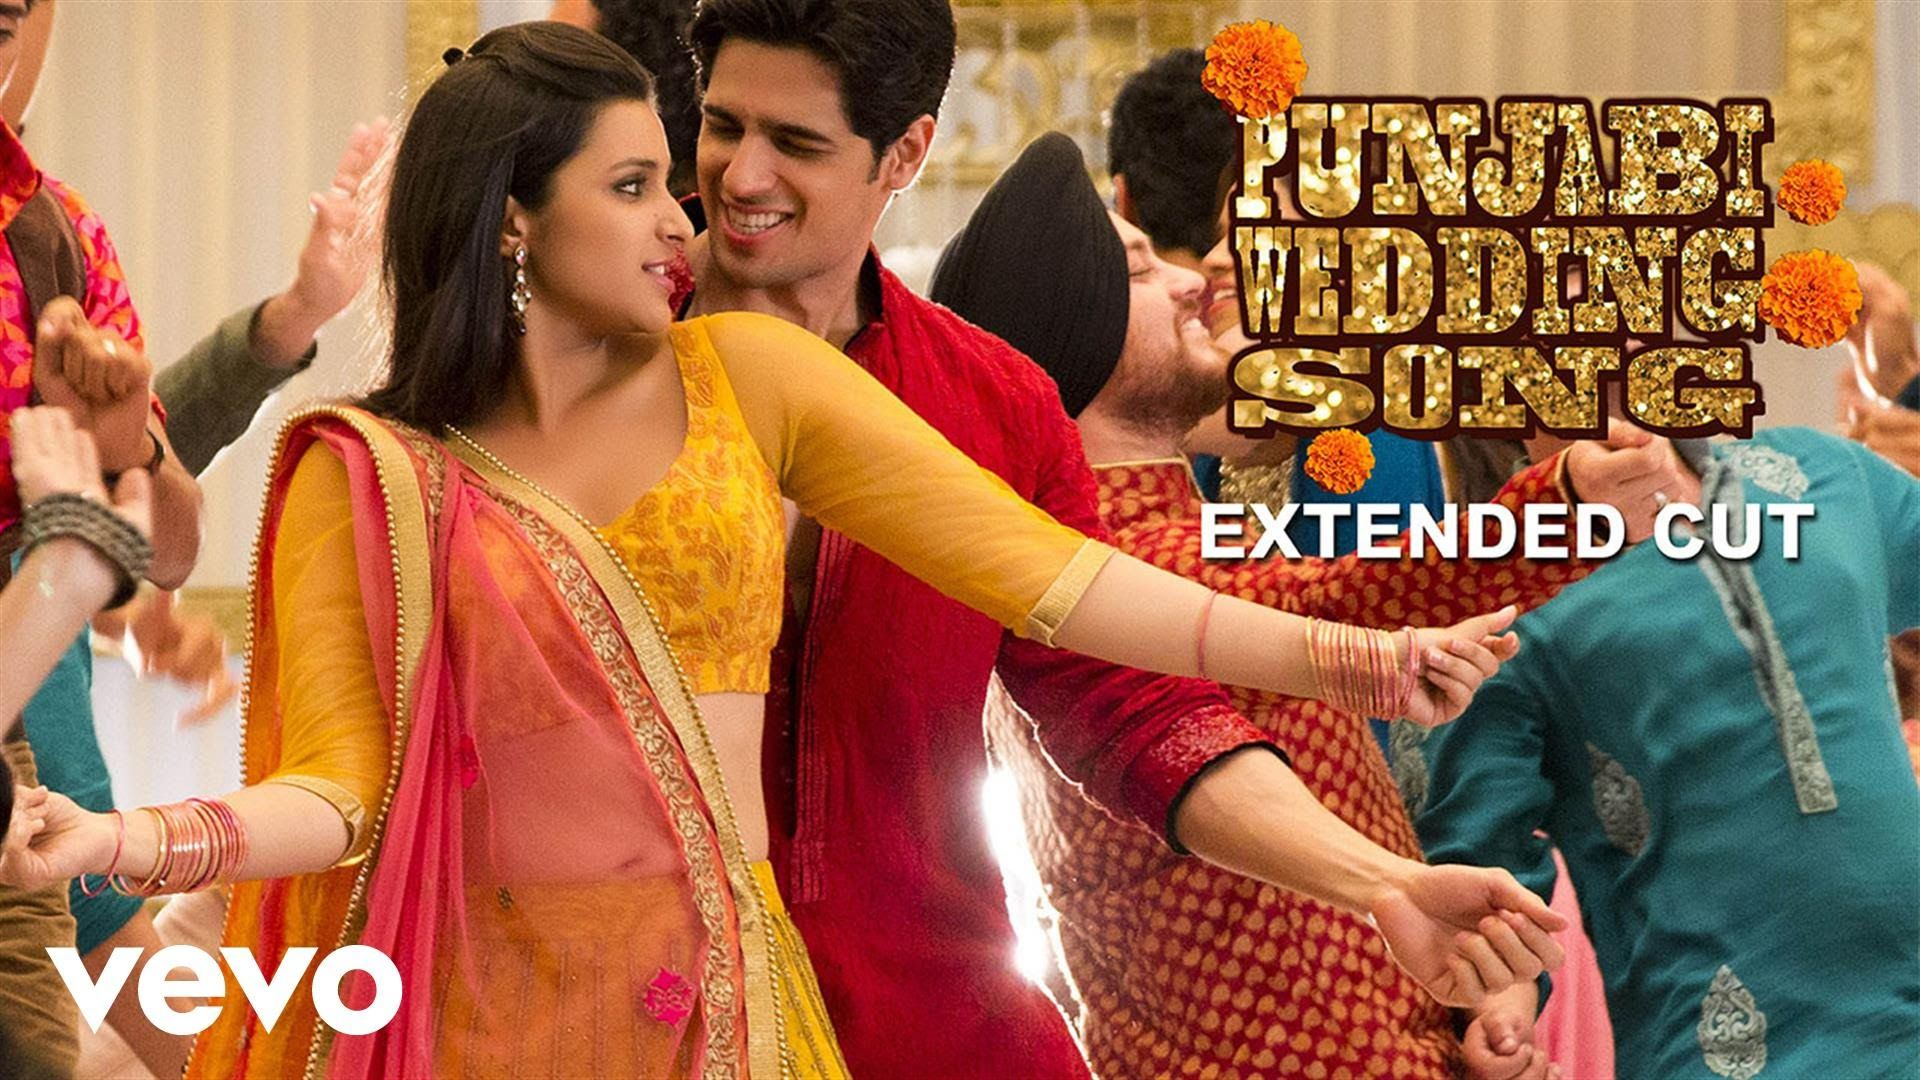 Punjabi Wedding Song Video Parineeti Chopra Hasee Toh